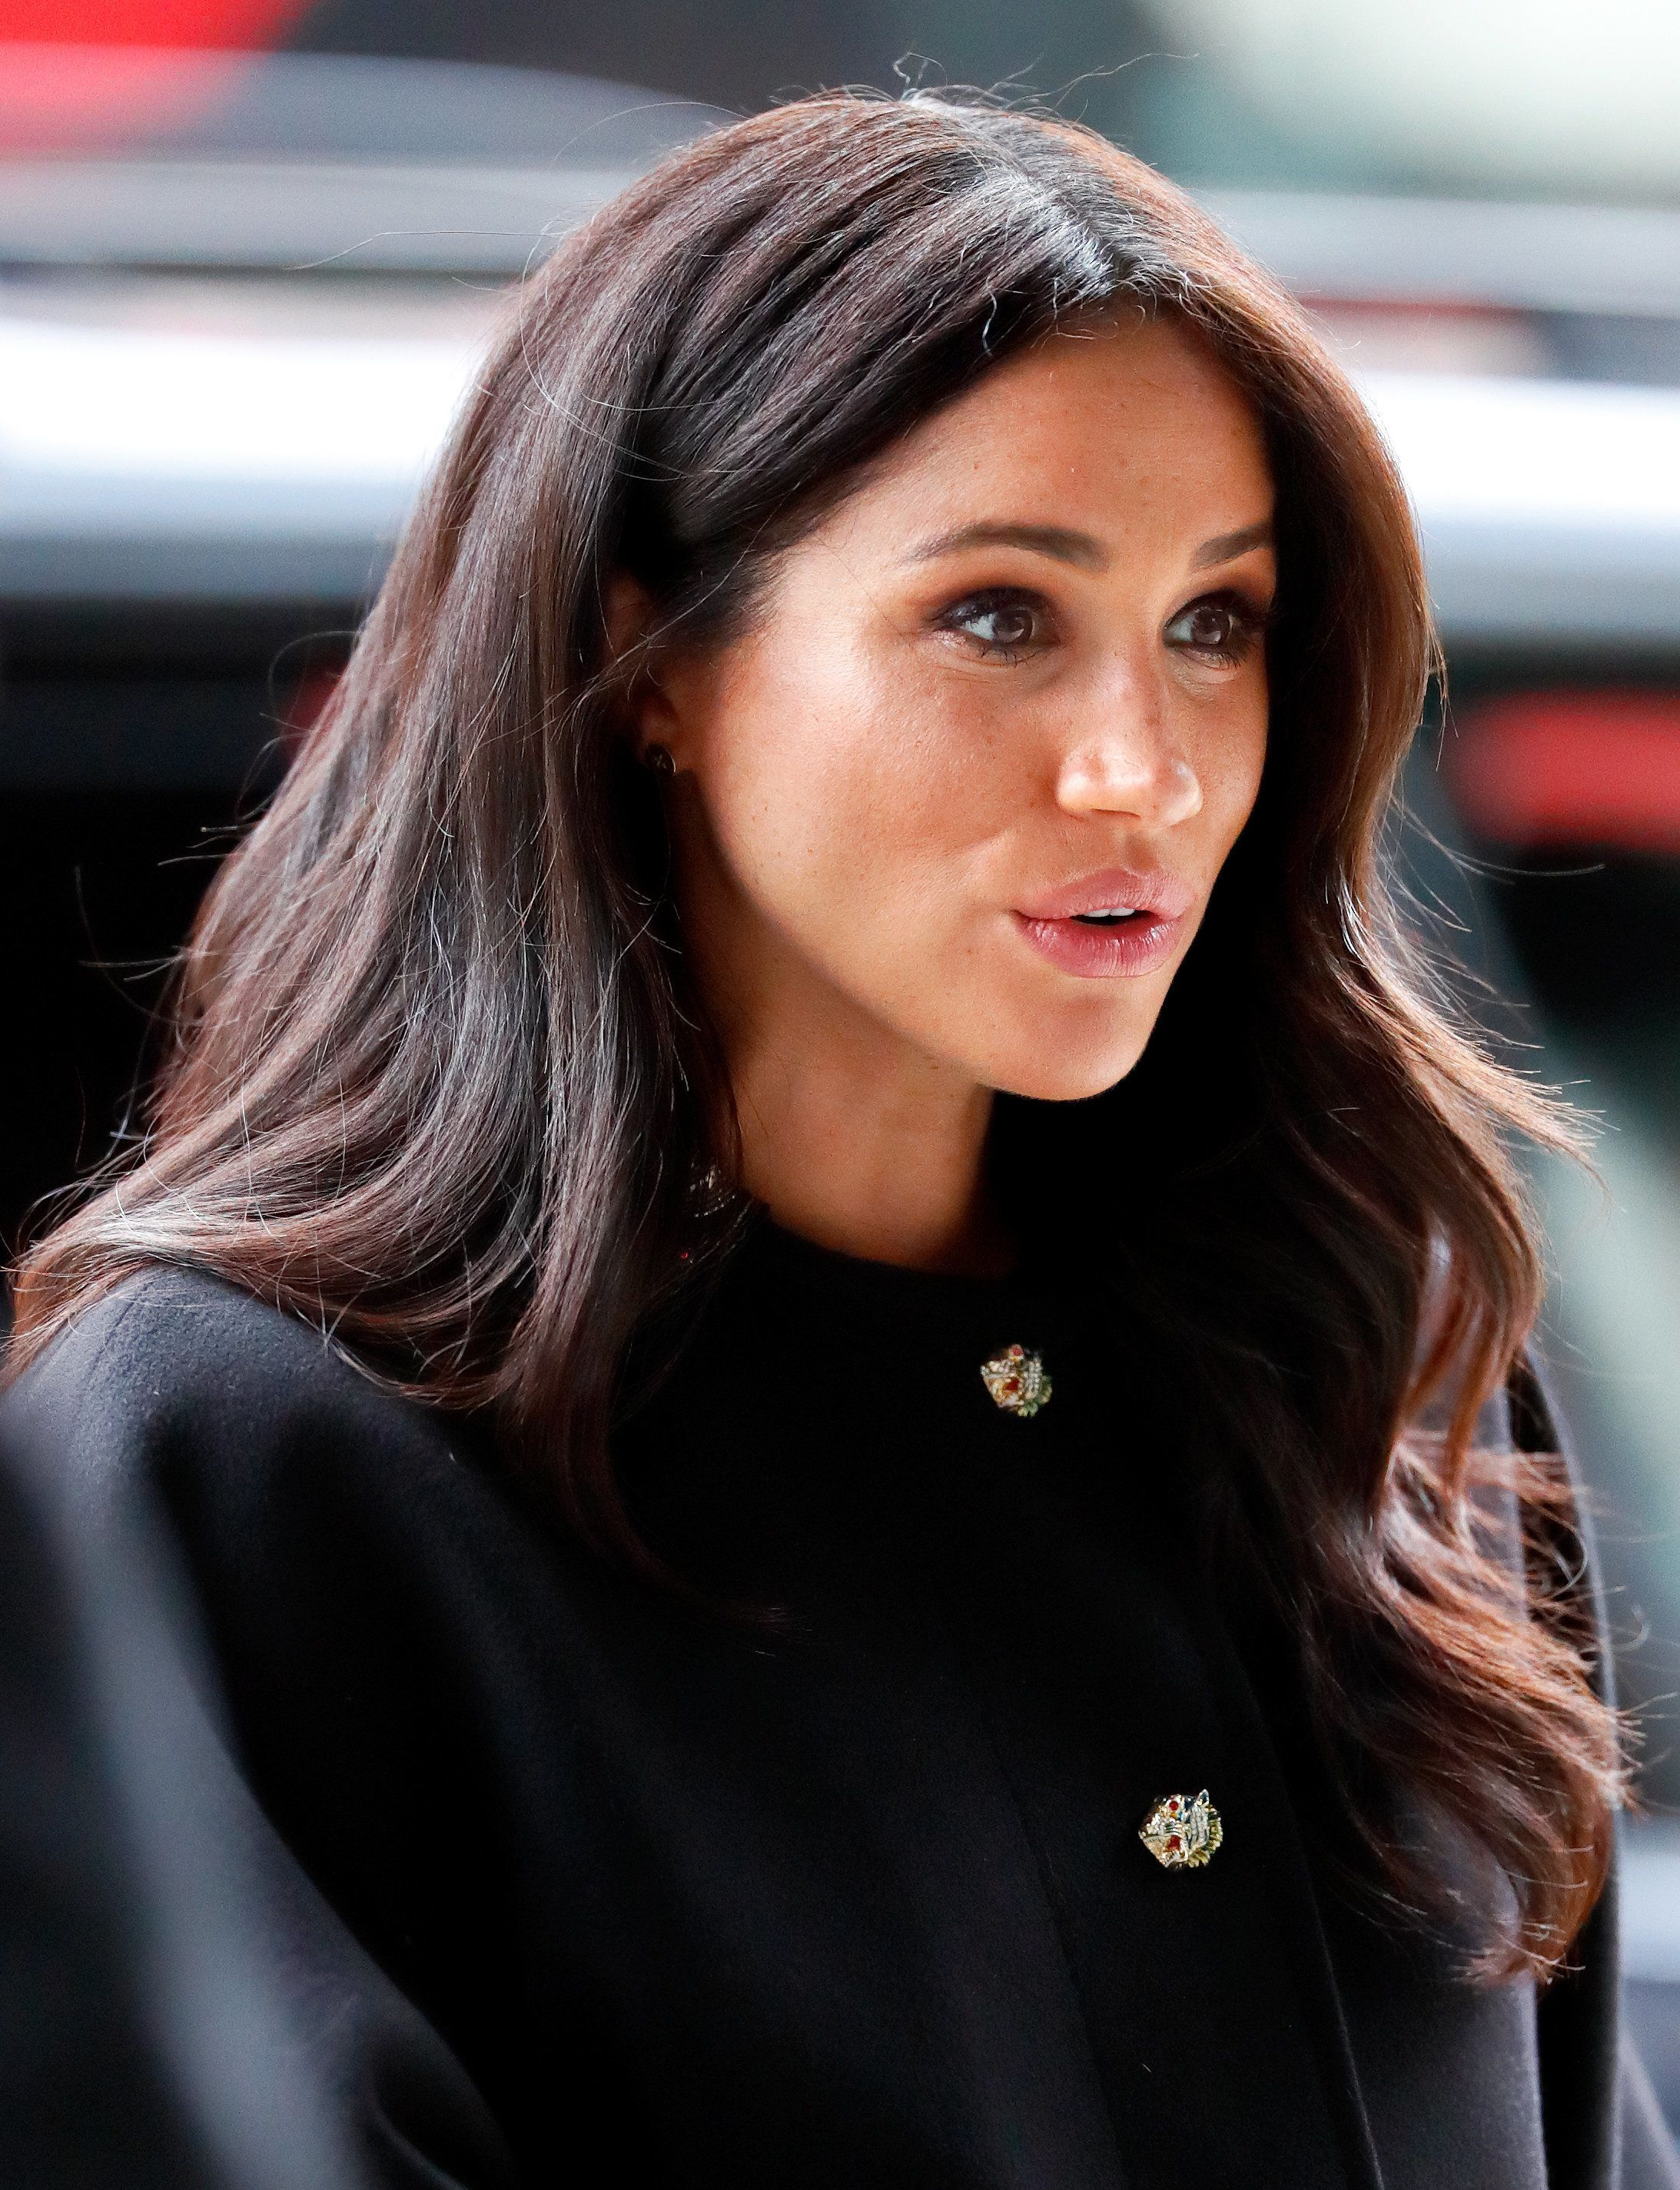 Royal Baby: Meghan Markle Goes Into Labour - With Prince Harry By Her